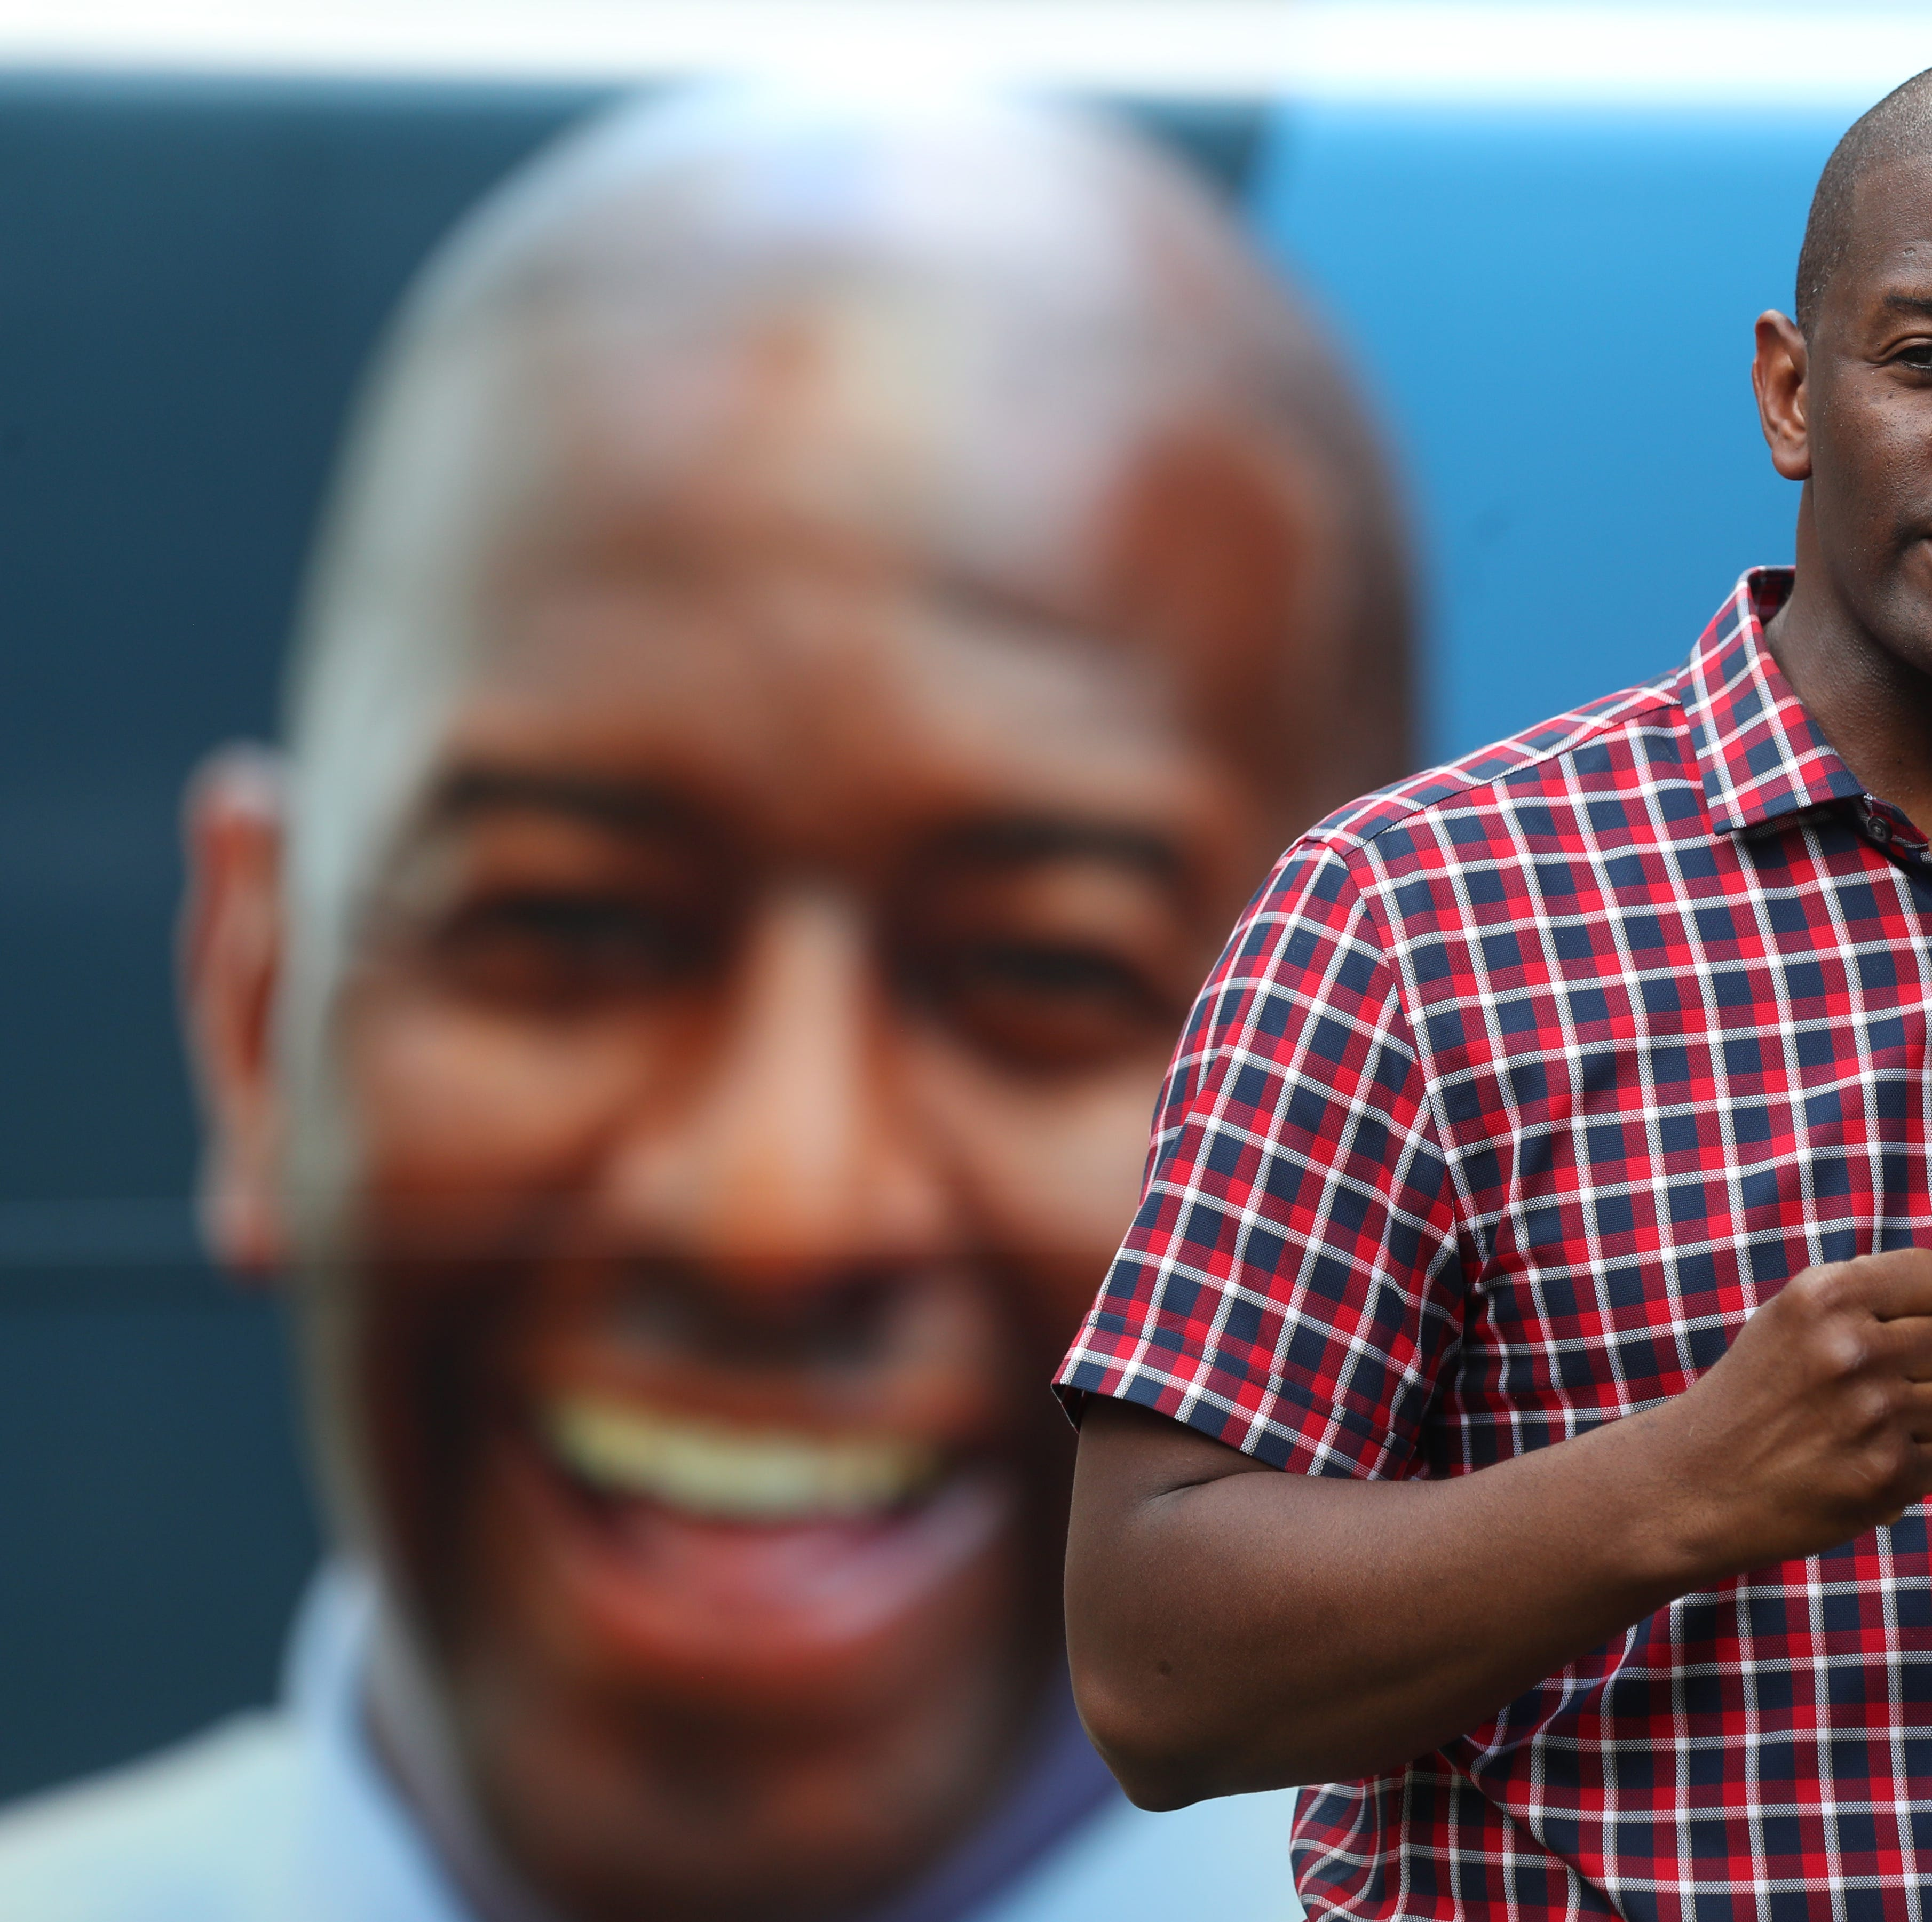 Gubernatorial candidate Andrew Gillum speaks to supporters as he kicks off his state-wide bus tour with a rally at Kleman Plaza on Monday, Aug. 20, 2018.